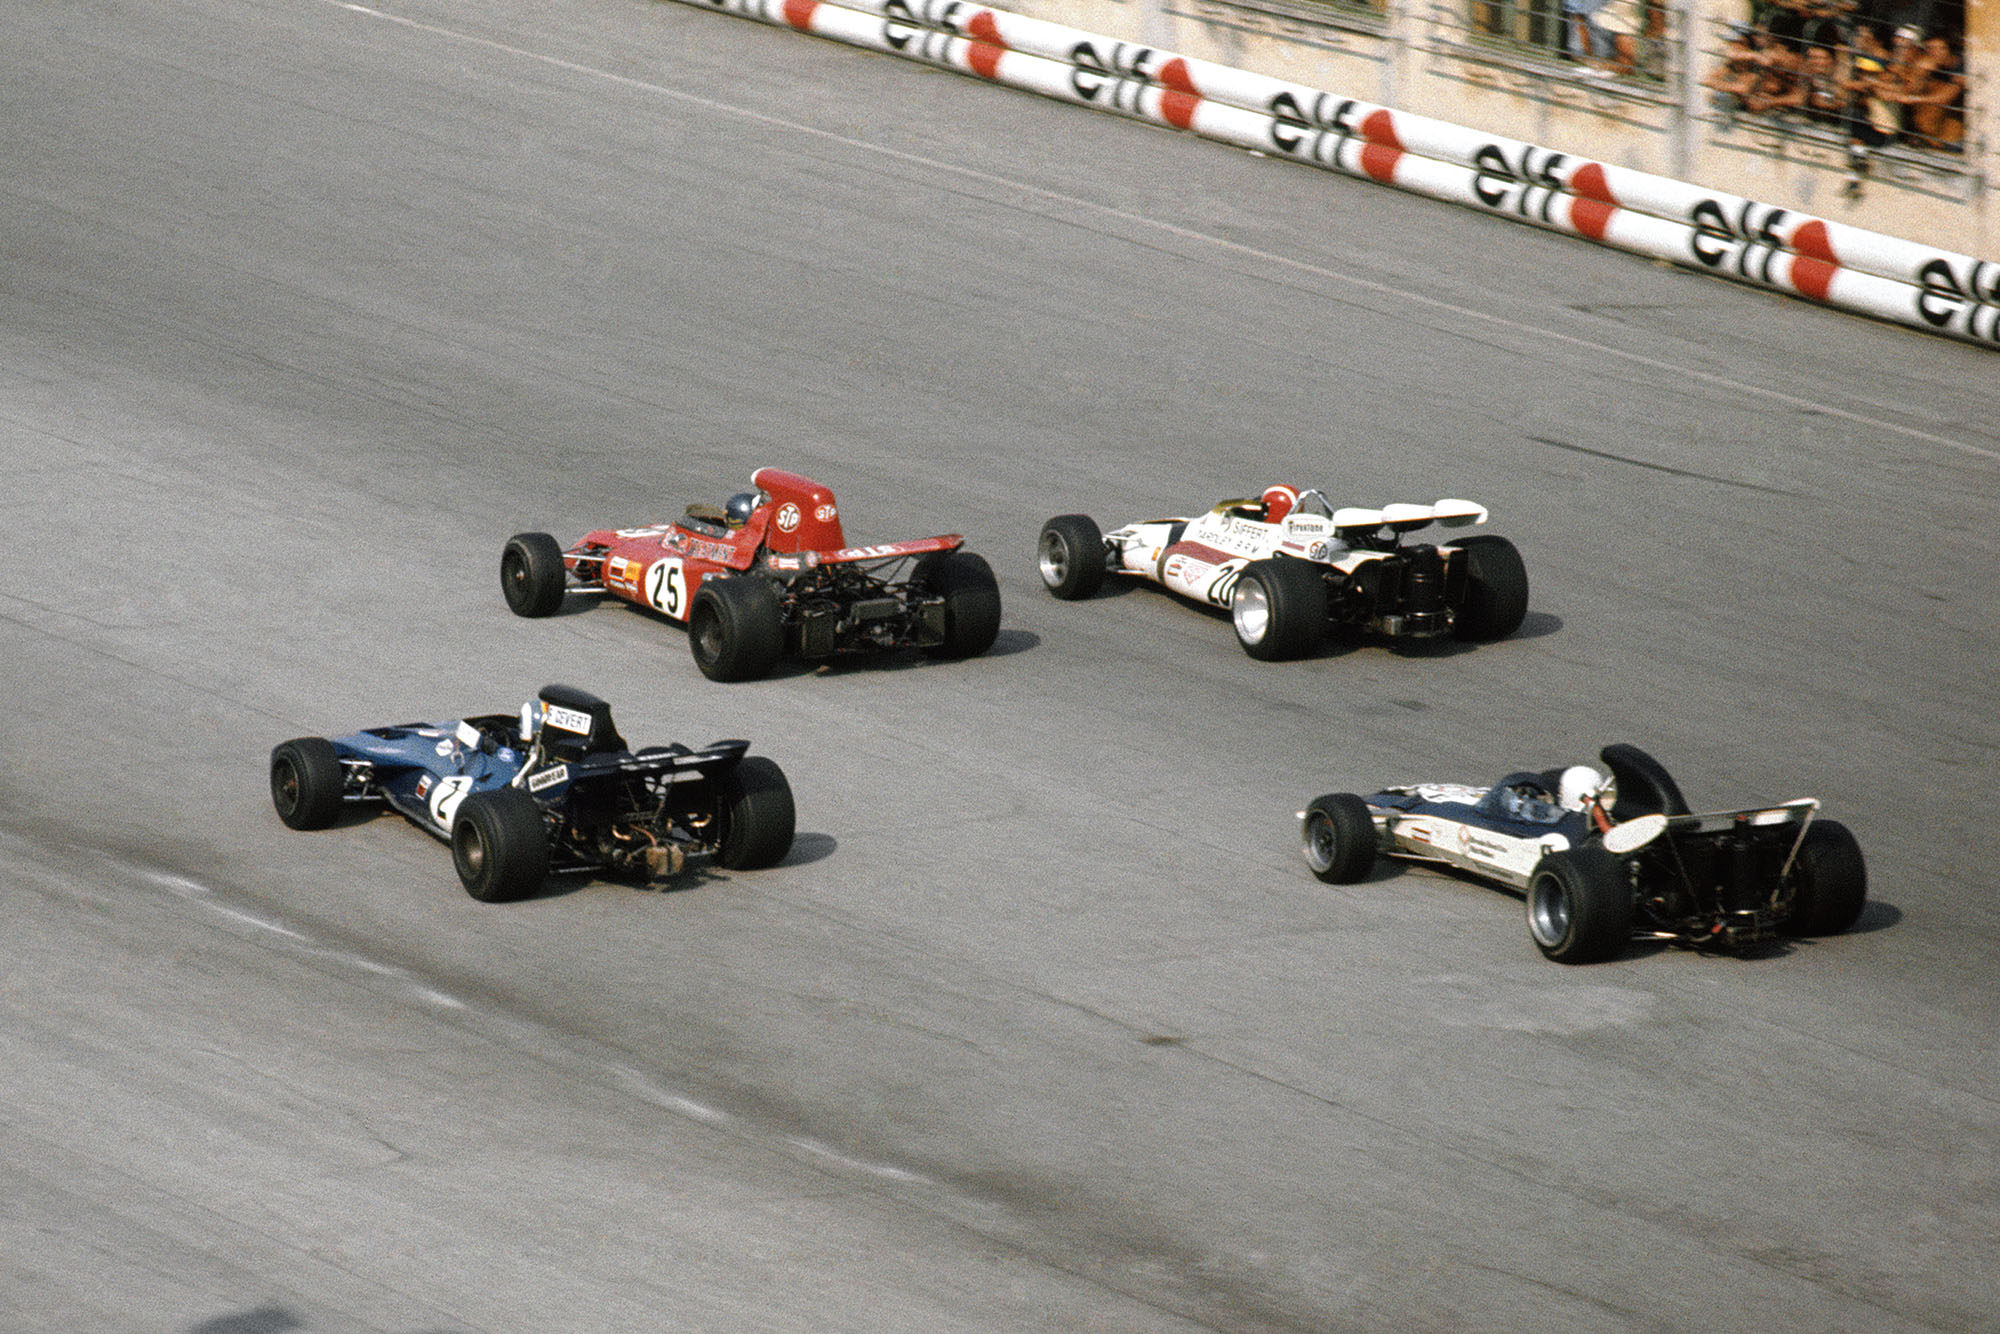 The battle for the lead continues unabated at the 1971 Italian Grand Prix.